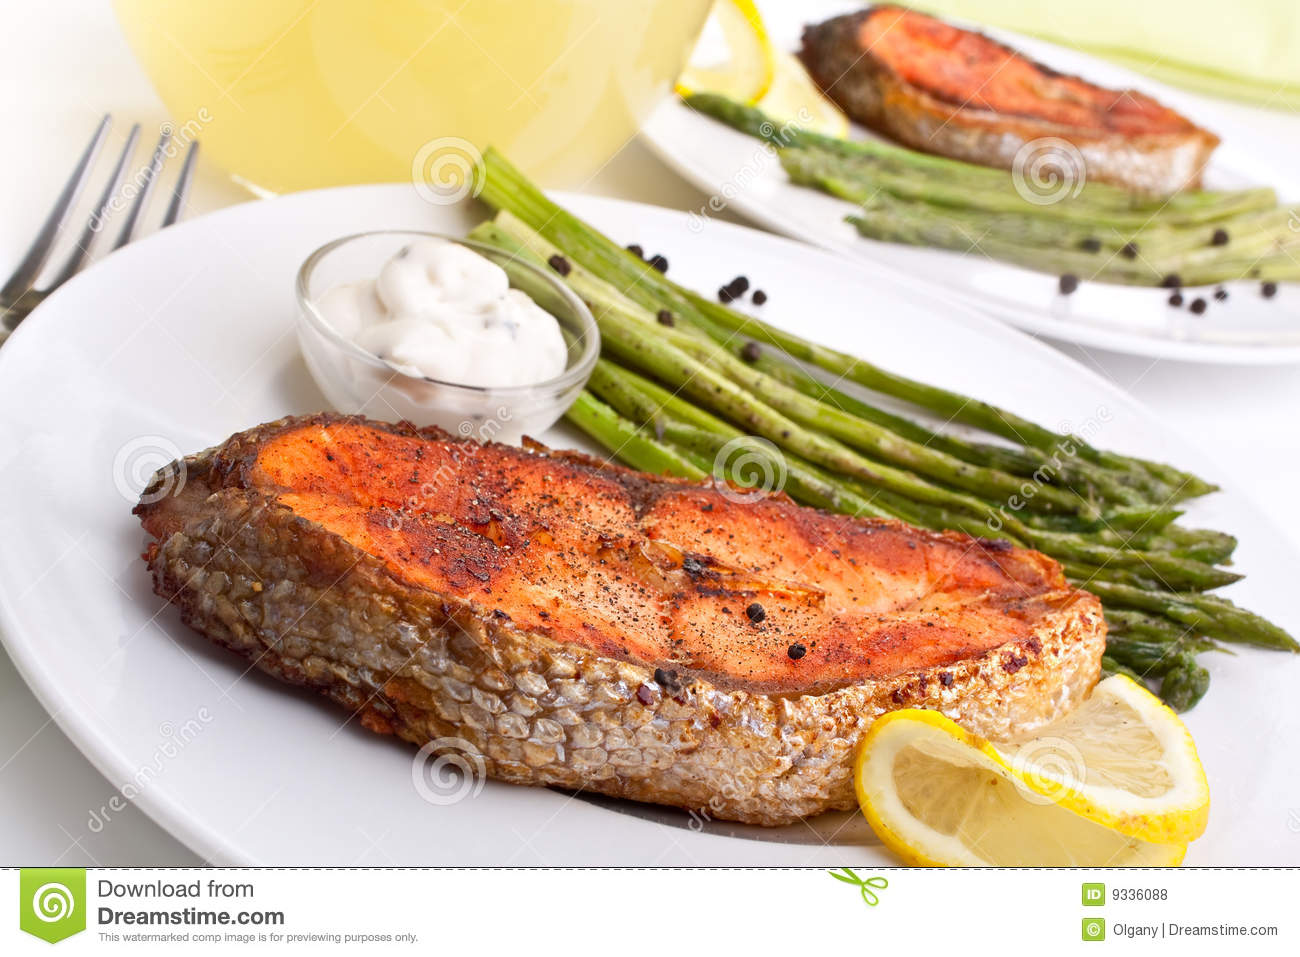 Grilled salmon with asparagus, lemon and cream sauce.